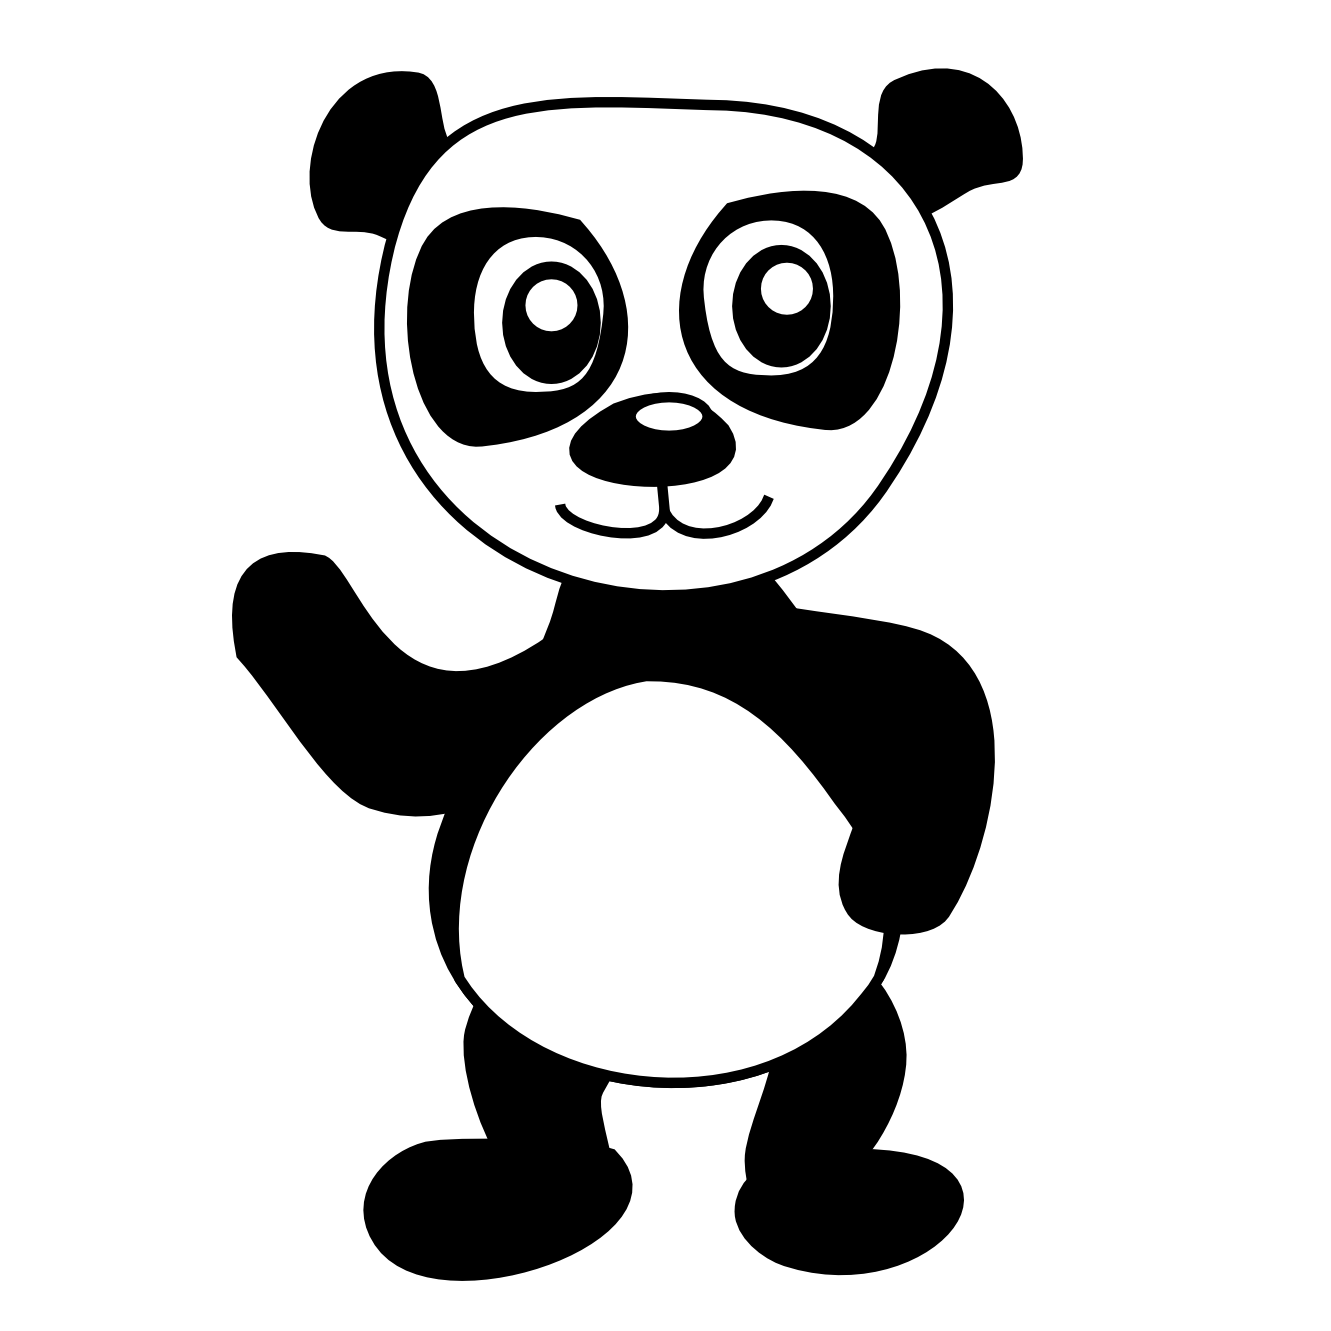 Coloring pages panda for kids to print - Explore Kids Sheets Coloring Pages For Adults And More Panda Coloring Pages Printable